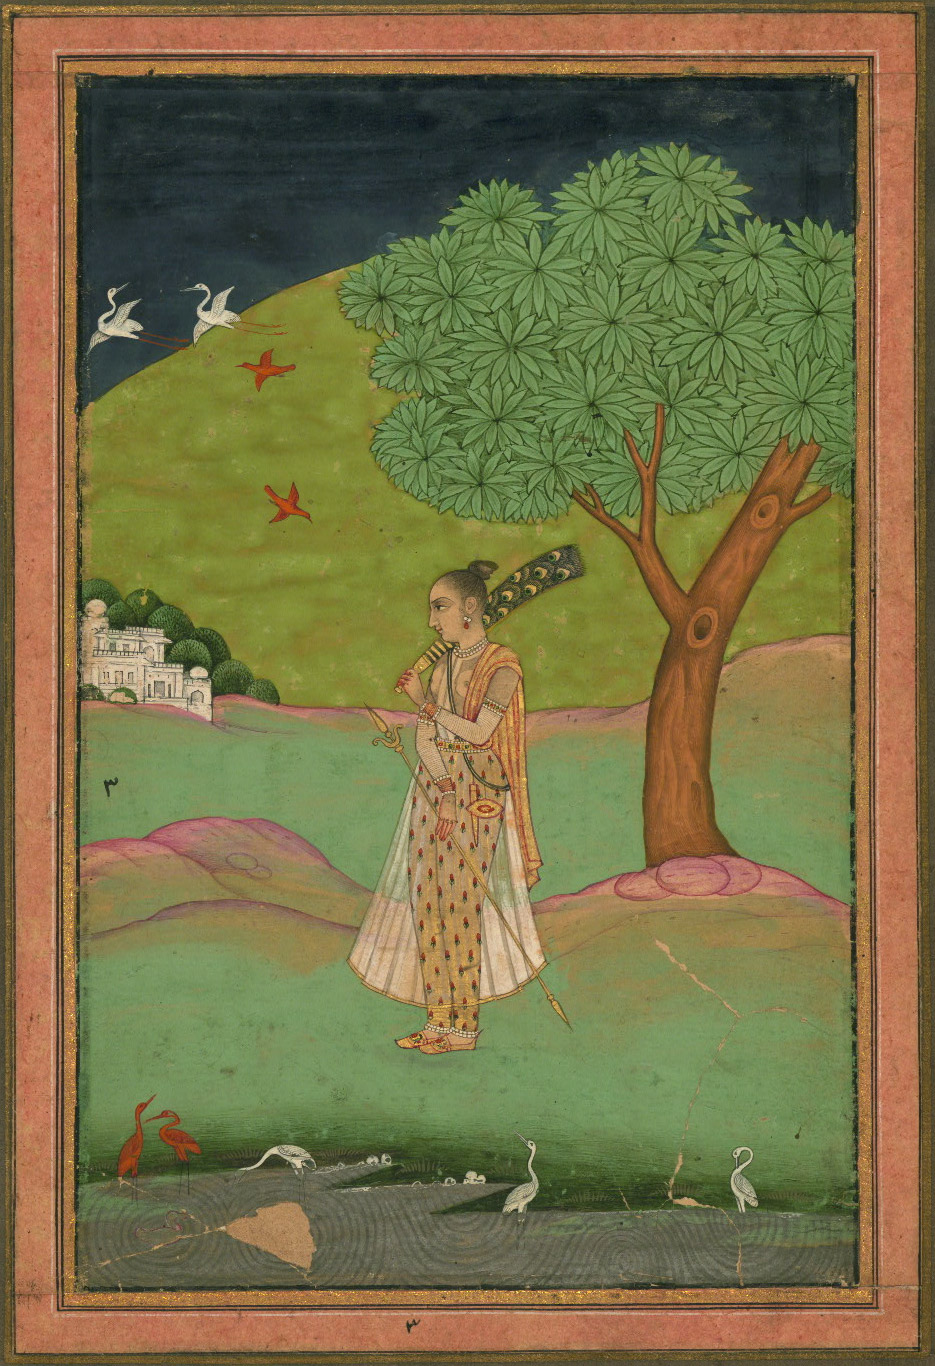 Unidentified Ragini, An Indian Woman, Holding a Fan, at a Pond - Miniature Painting, Deccan School, Ragamala Series, 19th Century